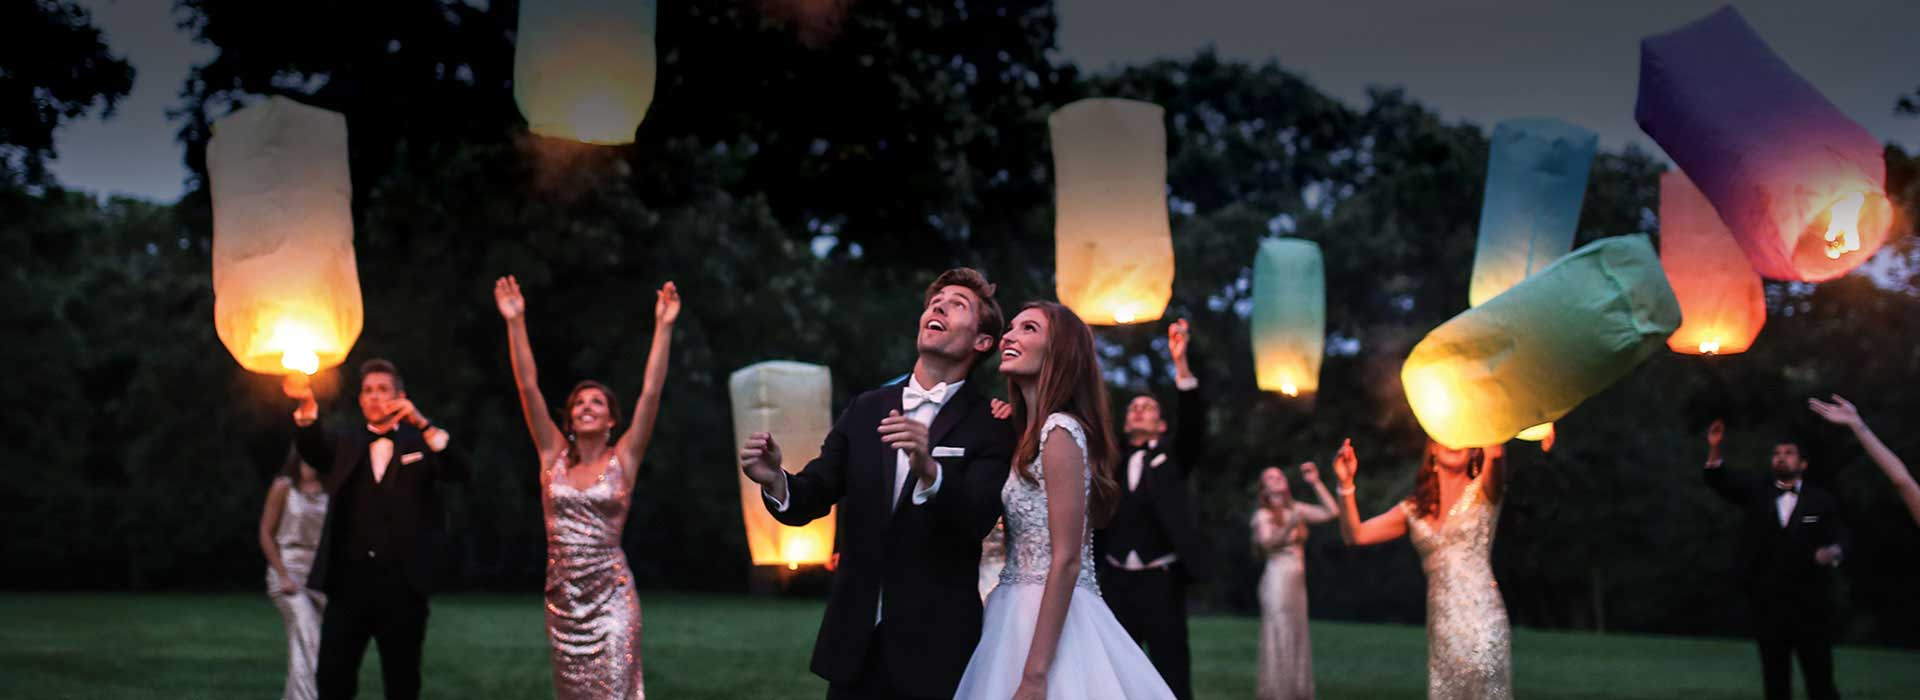 Wedding Party at night with lanterns